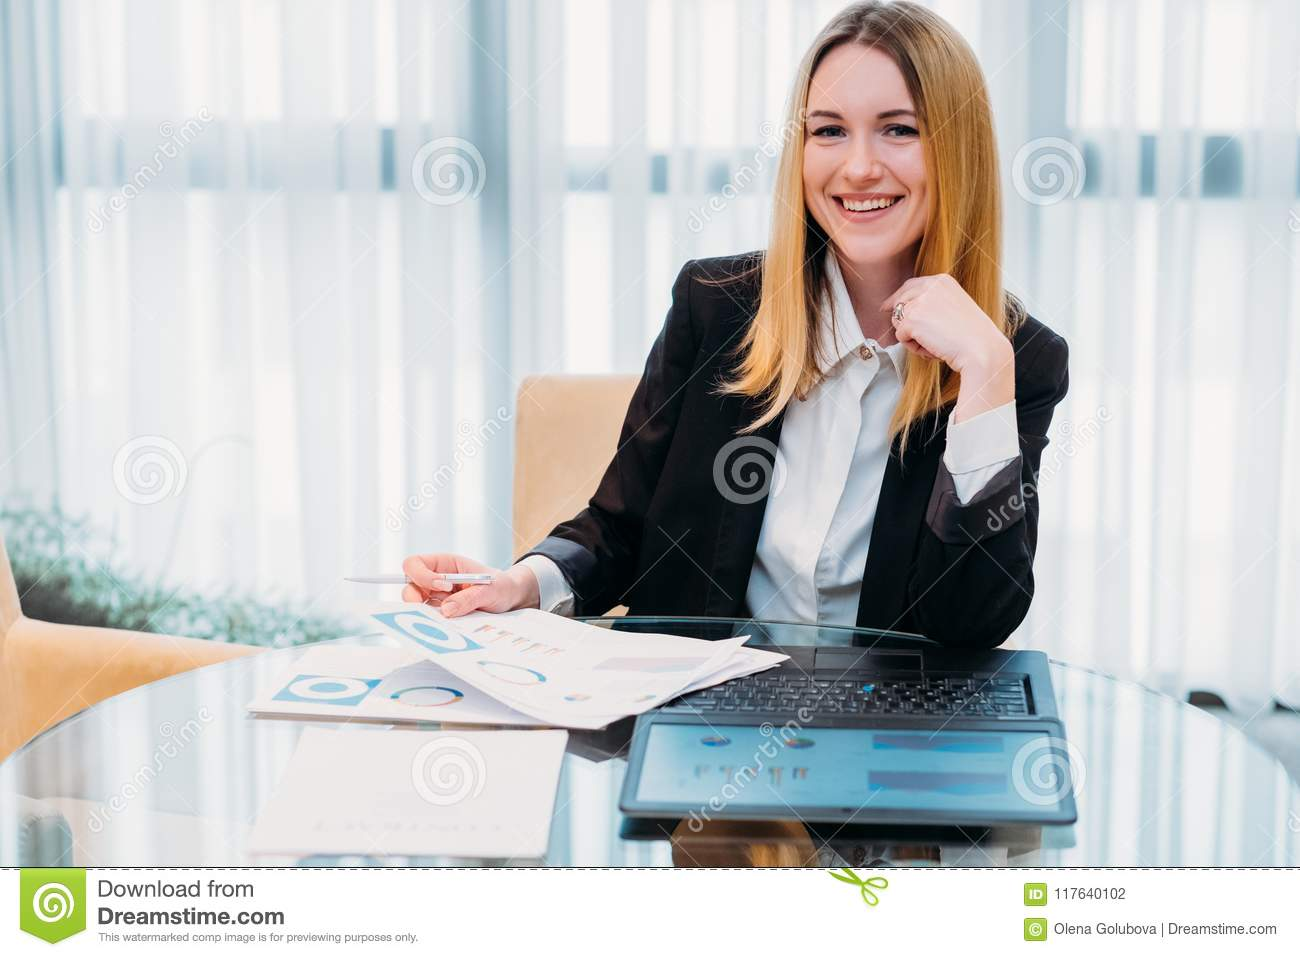 Business lady work manager documents office